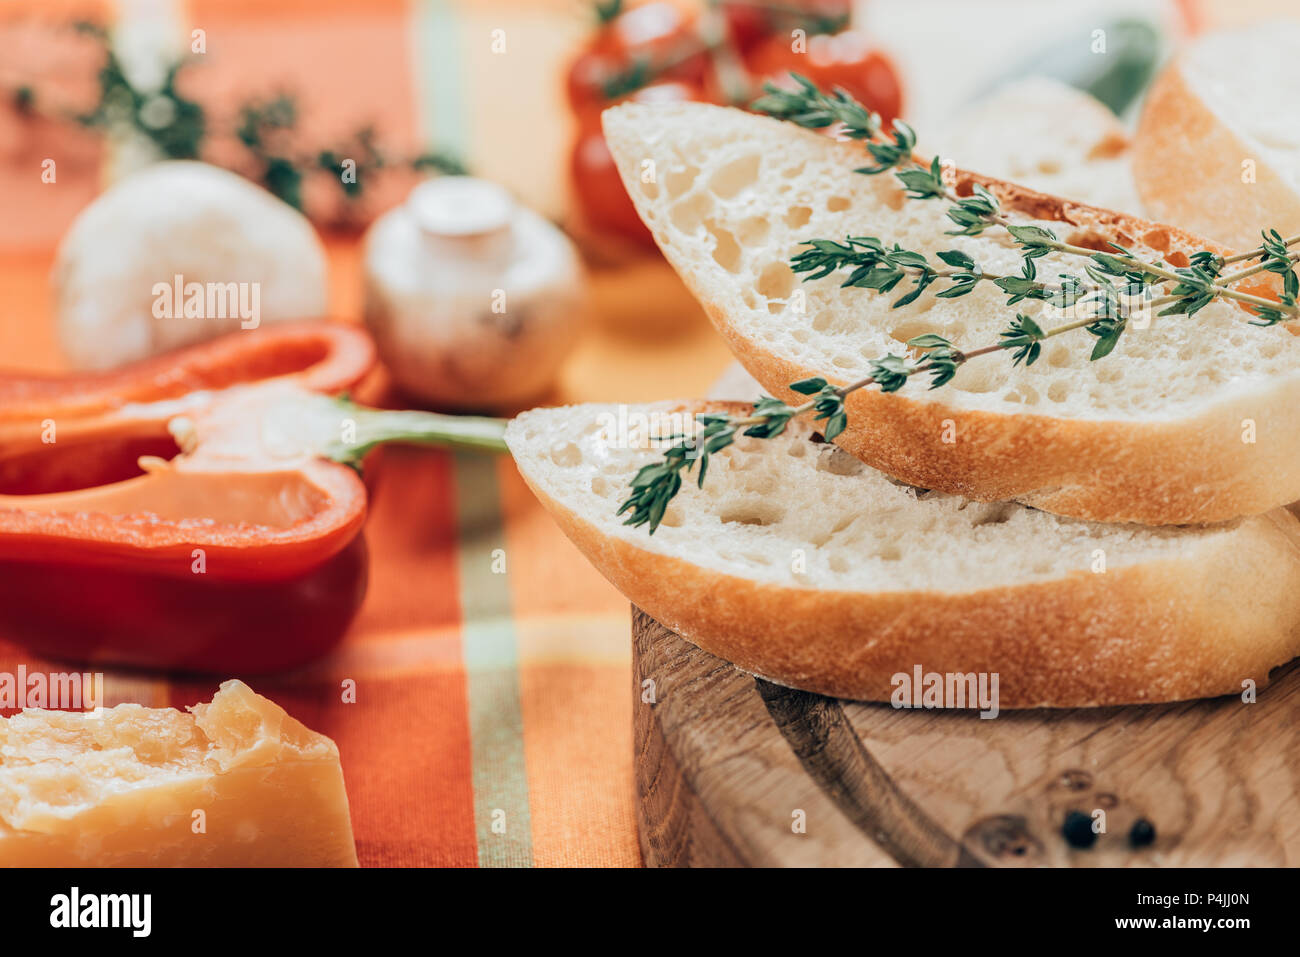 close-up view of fresh sliced baguette on wooden cutting board and parmesan cheese with bell pepper and mushrooms on table Stock Photo